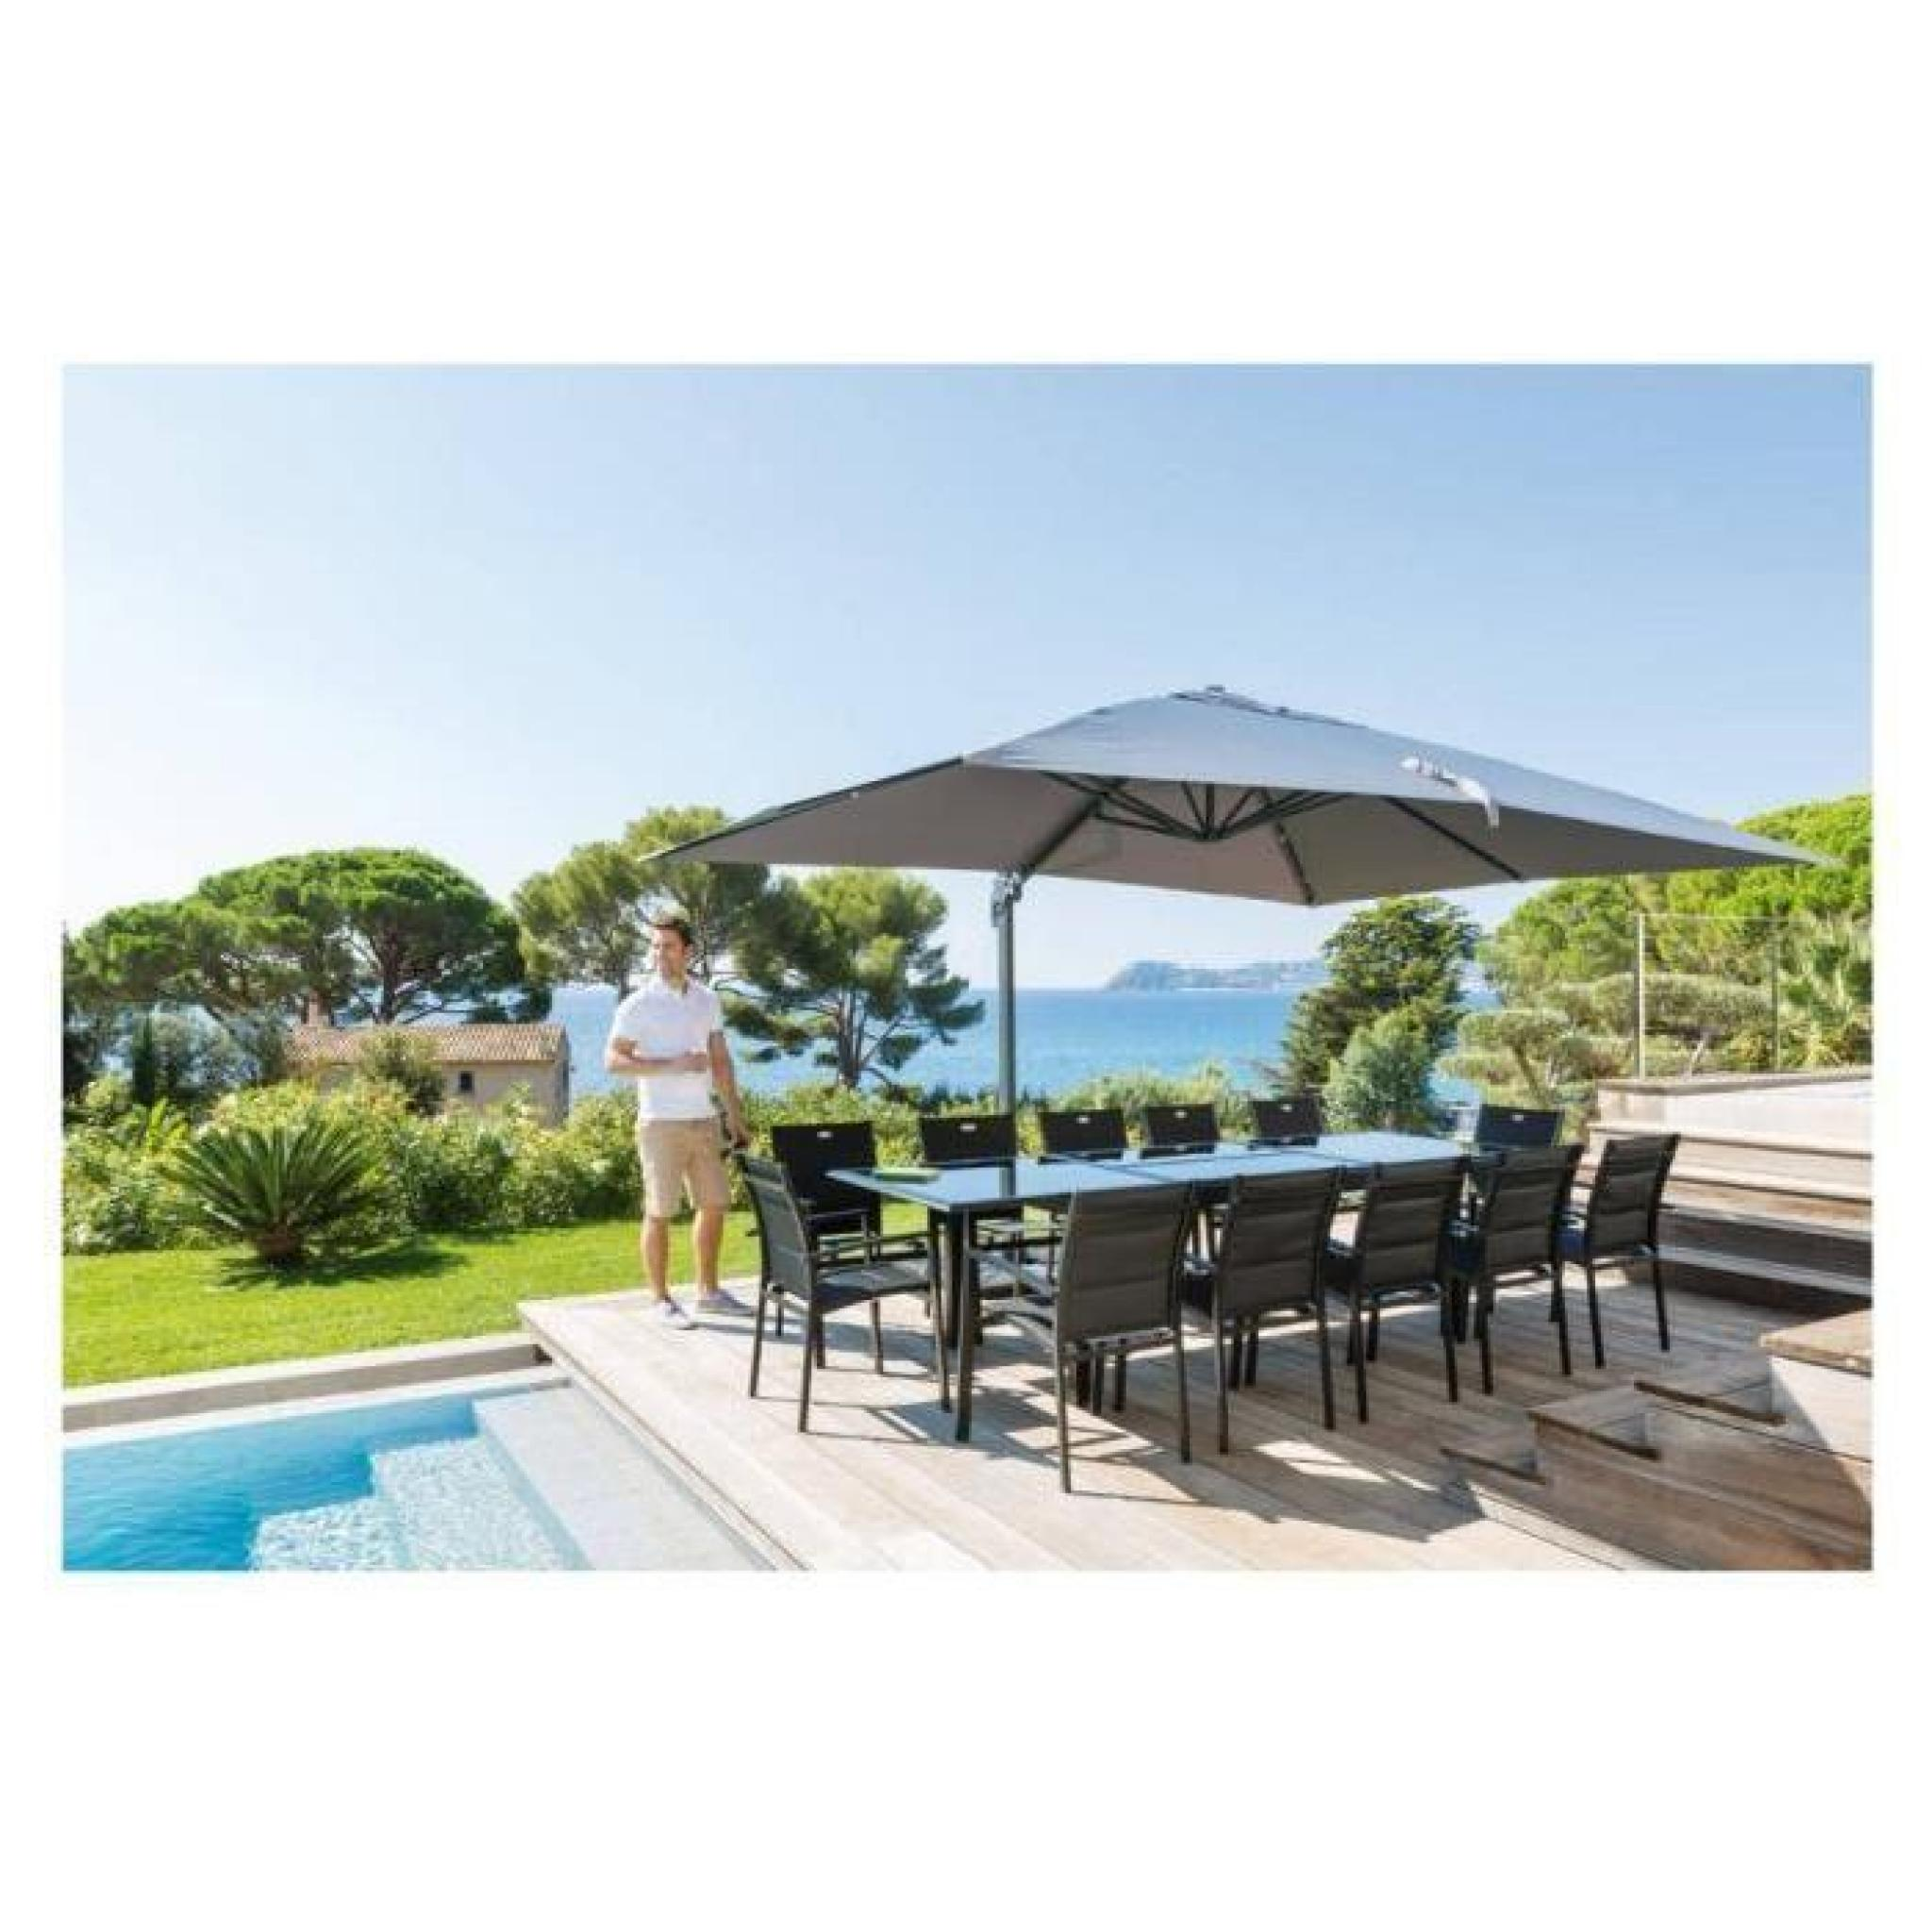 parasol decentre rectangulaire fresno gris achat vente parasol inclinable pas cher. Black Bedroom Furniture Sets. Home Design Ideas